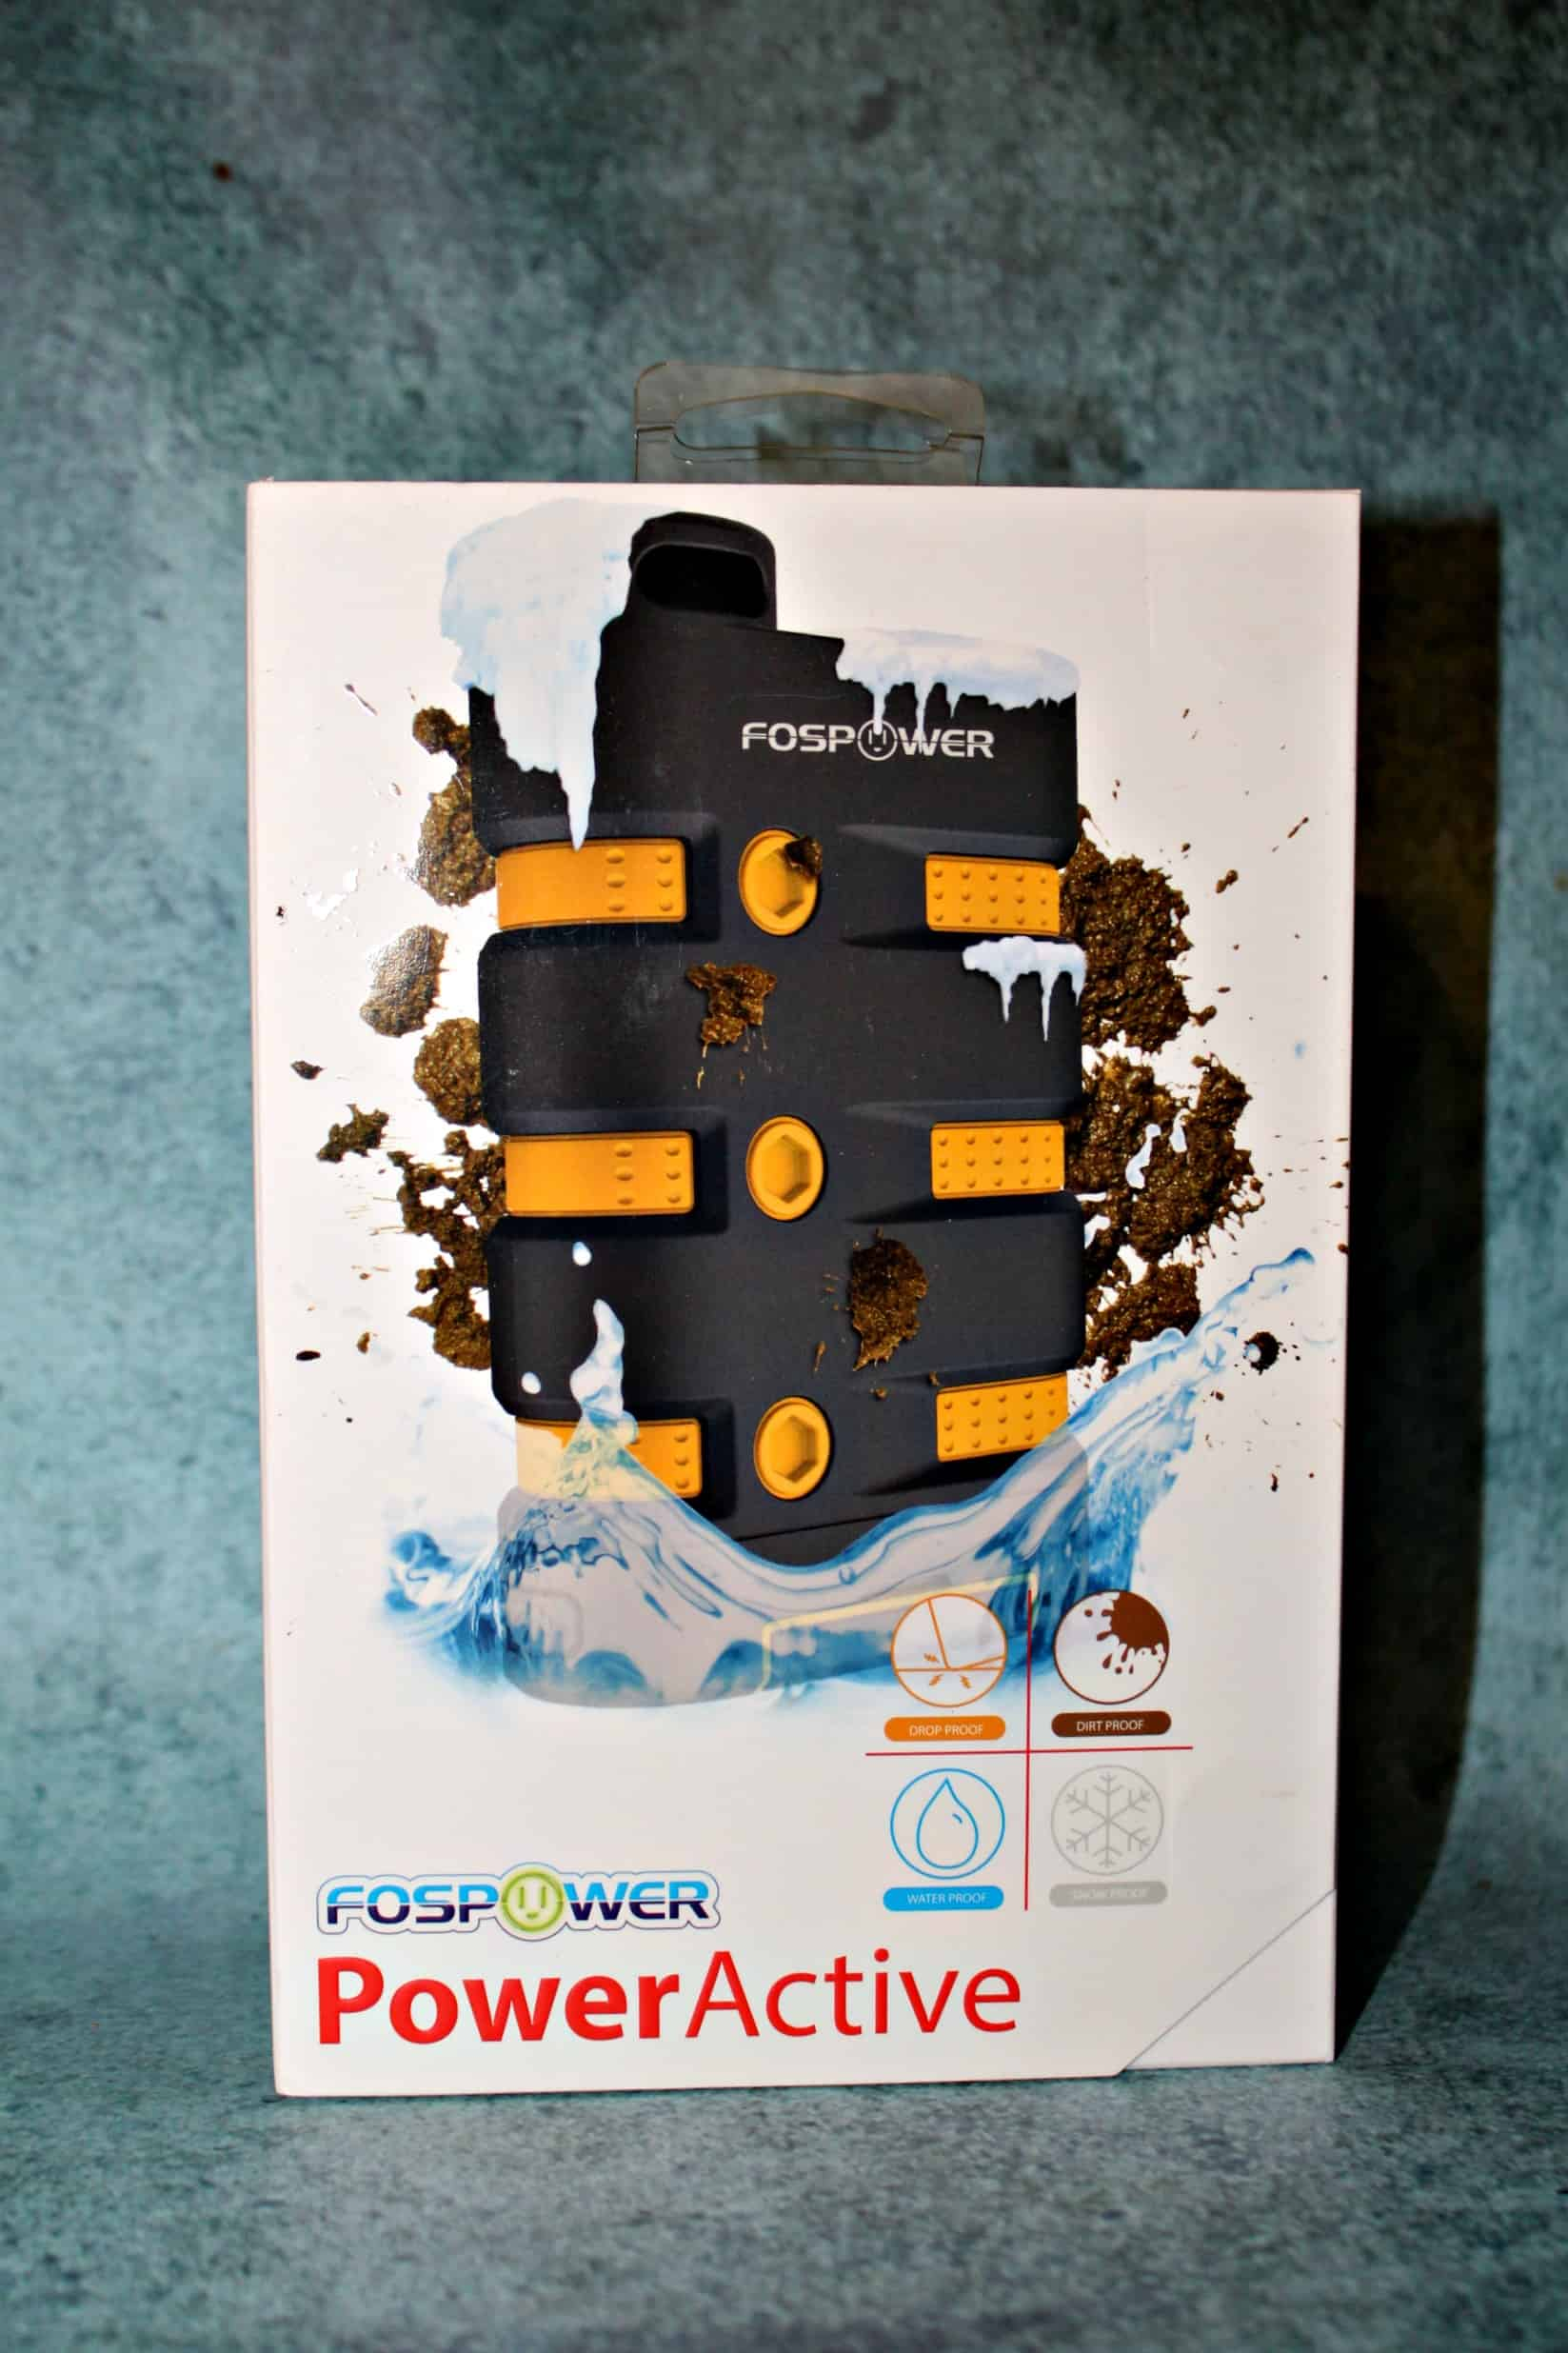 FosPower PowerActive USB Power Bank